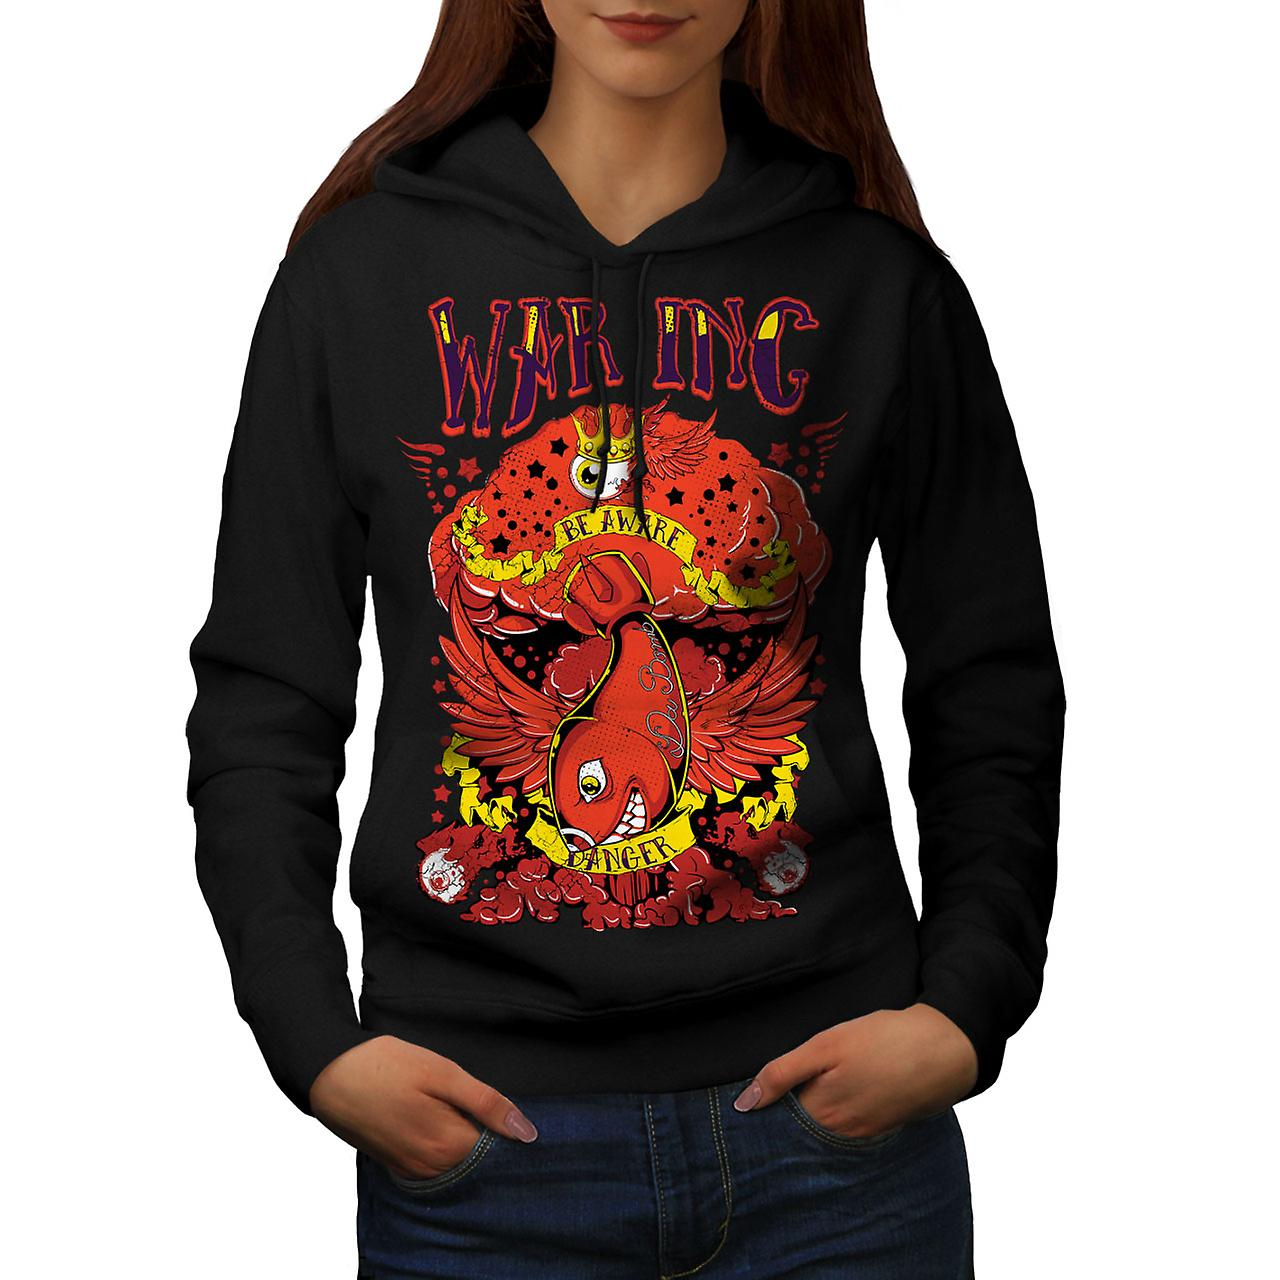 War Inc Nuke Bomb Fashion Women Black Hoodie | Wellcoda